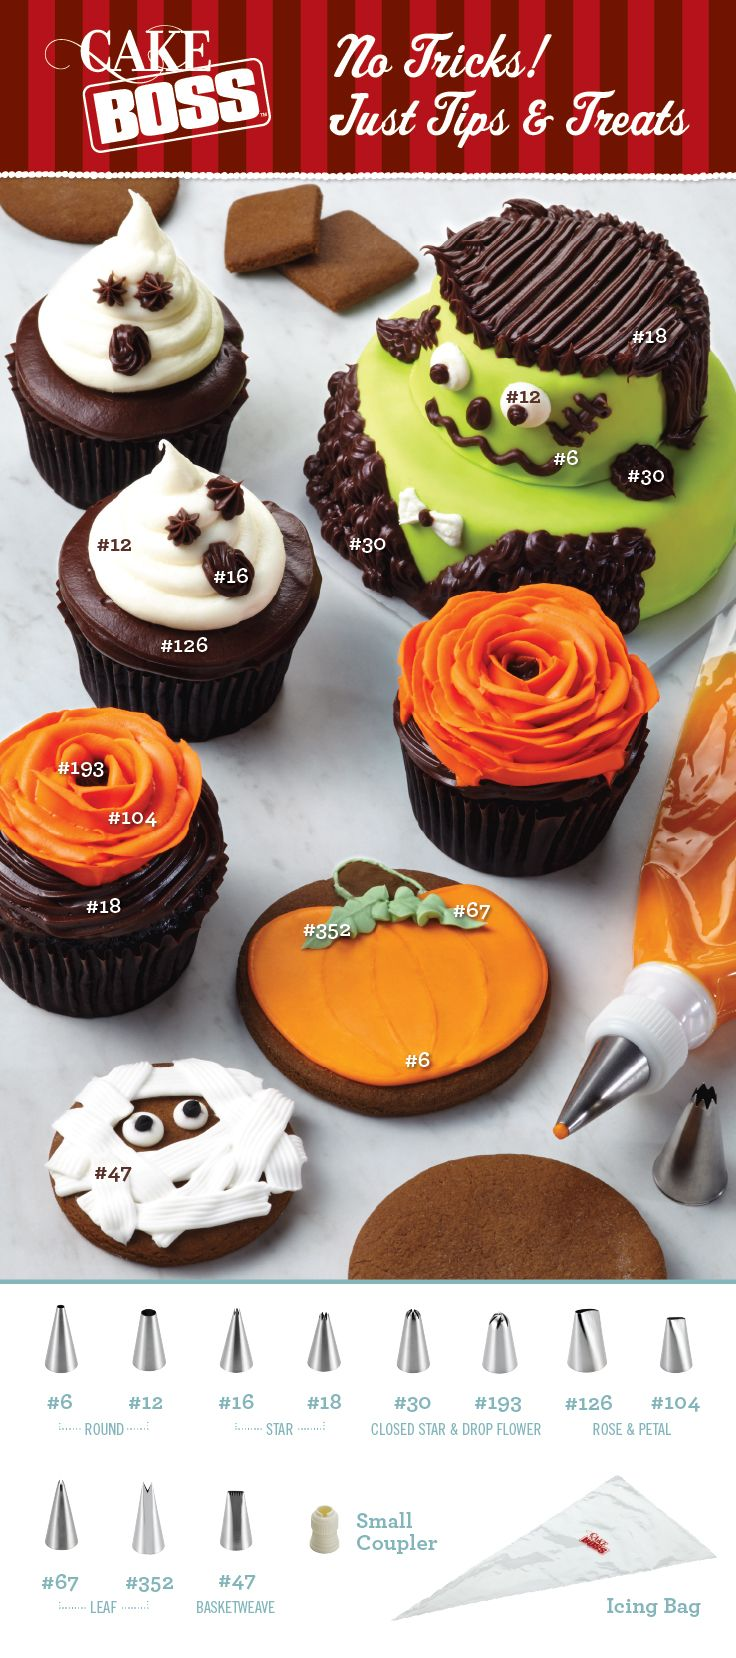 Cake Boss Cupcake Decorating Ideas : 17 Best ideas about Cake Boss on Pinterest Cake boss ...